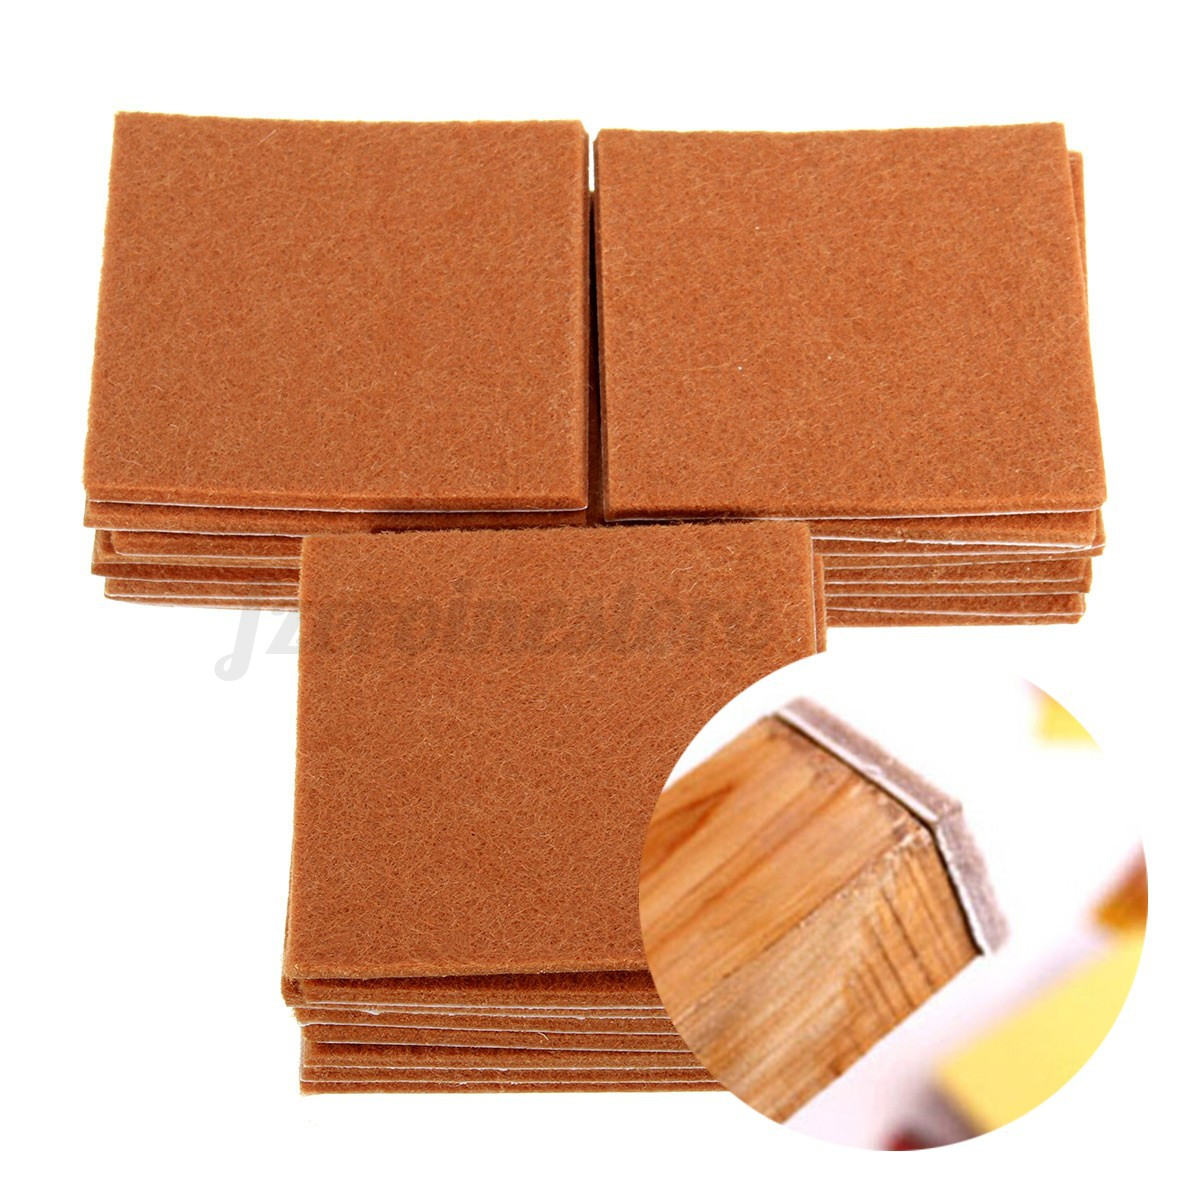 chair felt pads santa rental 24 pcs heavy duty oak wood laminate floor chairs furniture